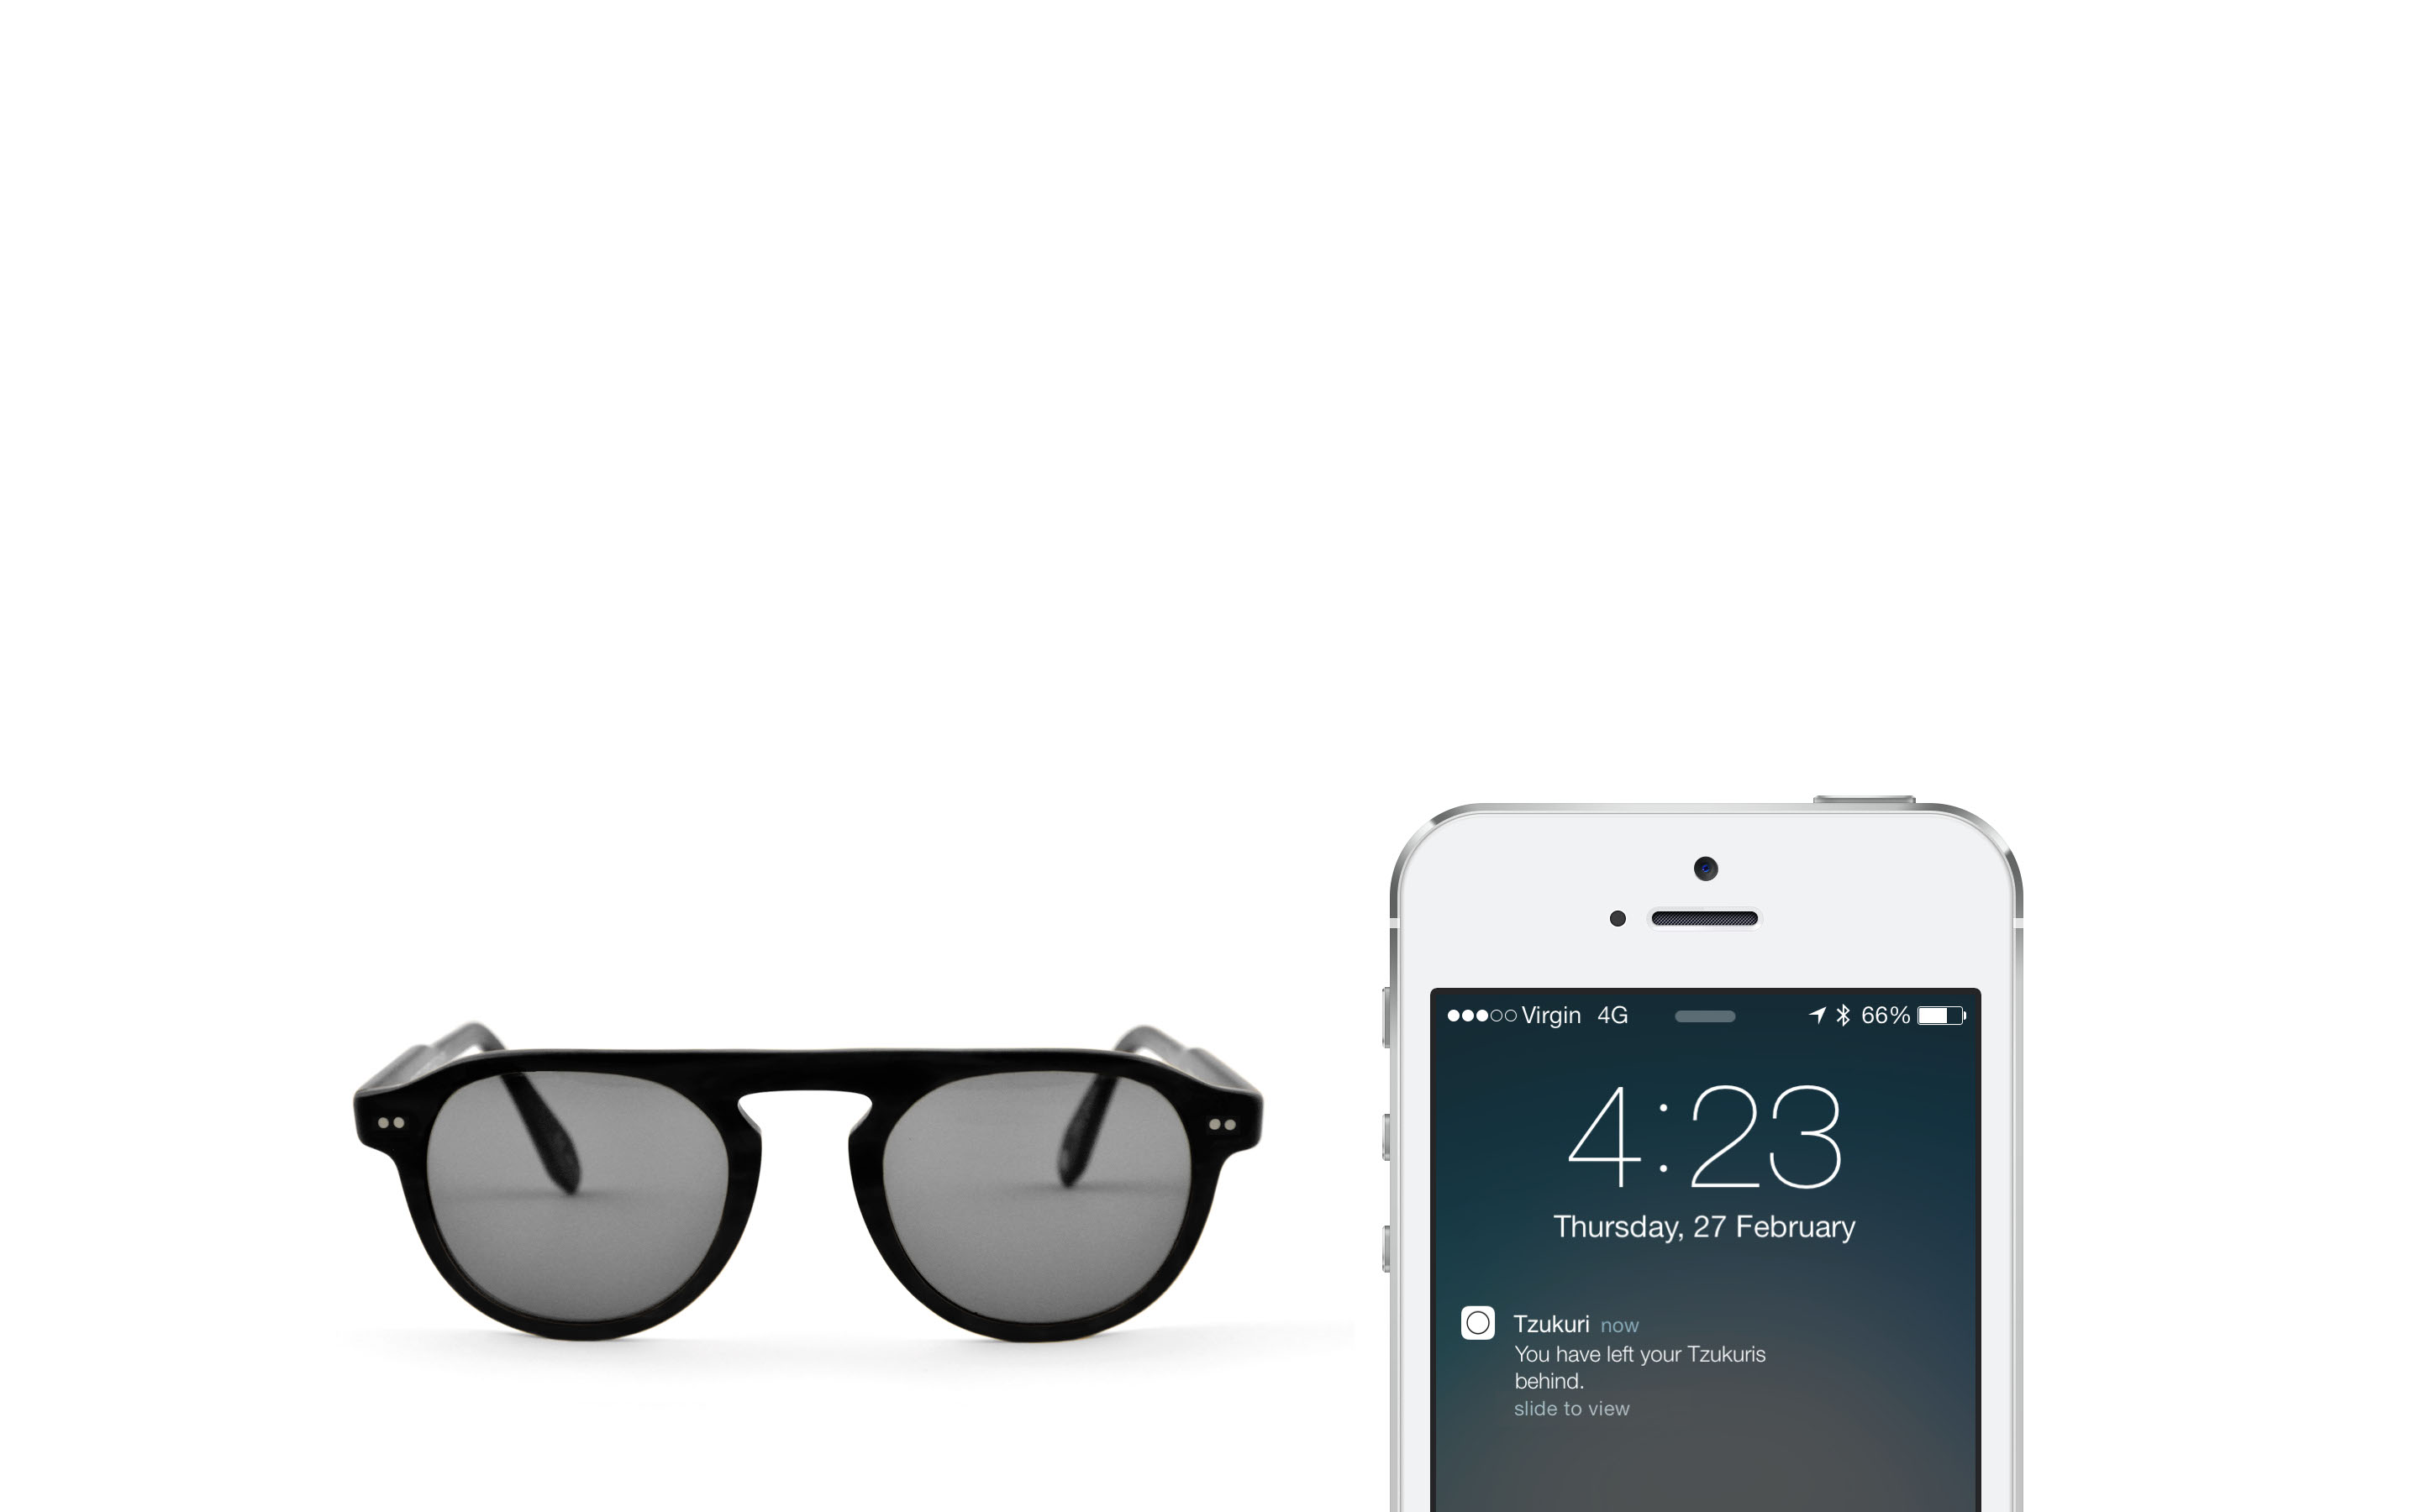 iBeacon sunglasses Tzukuri use Bluetooth Low Energy